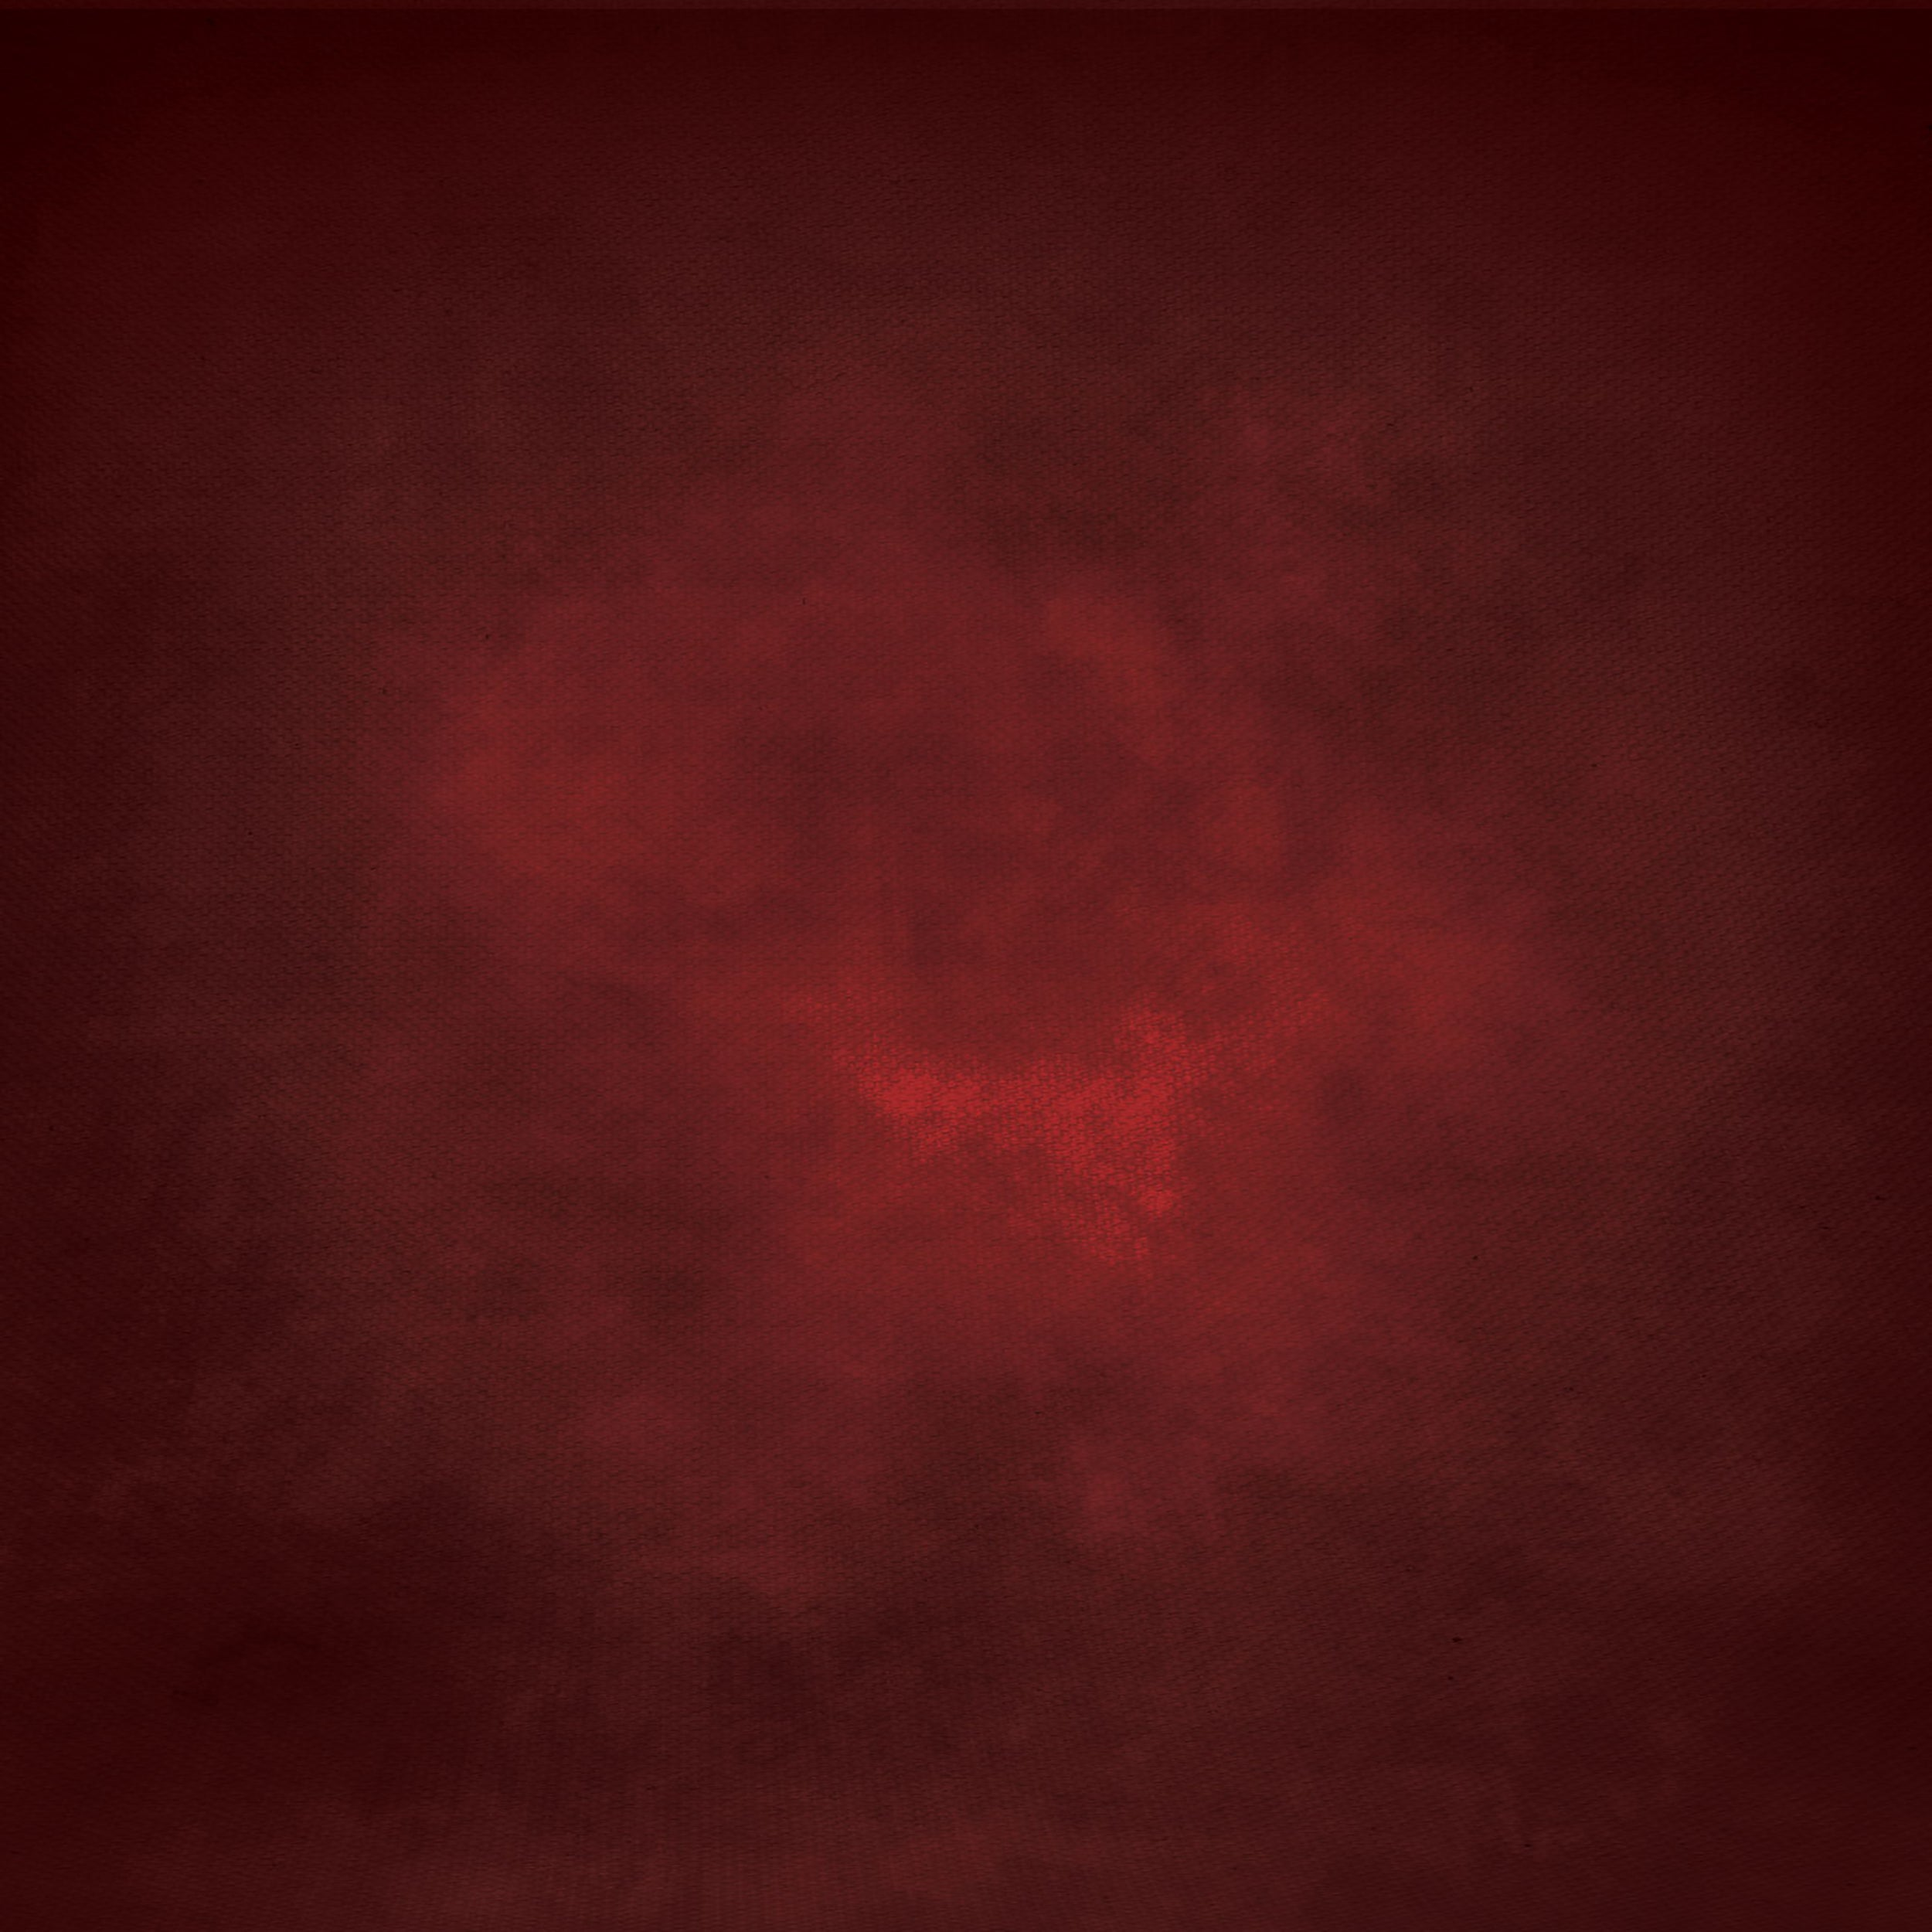 Fox Abstract Dark Red Vinyl Photography Backdrop